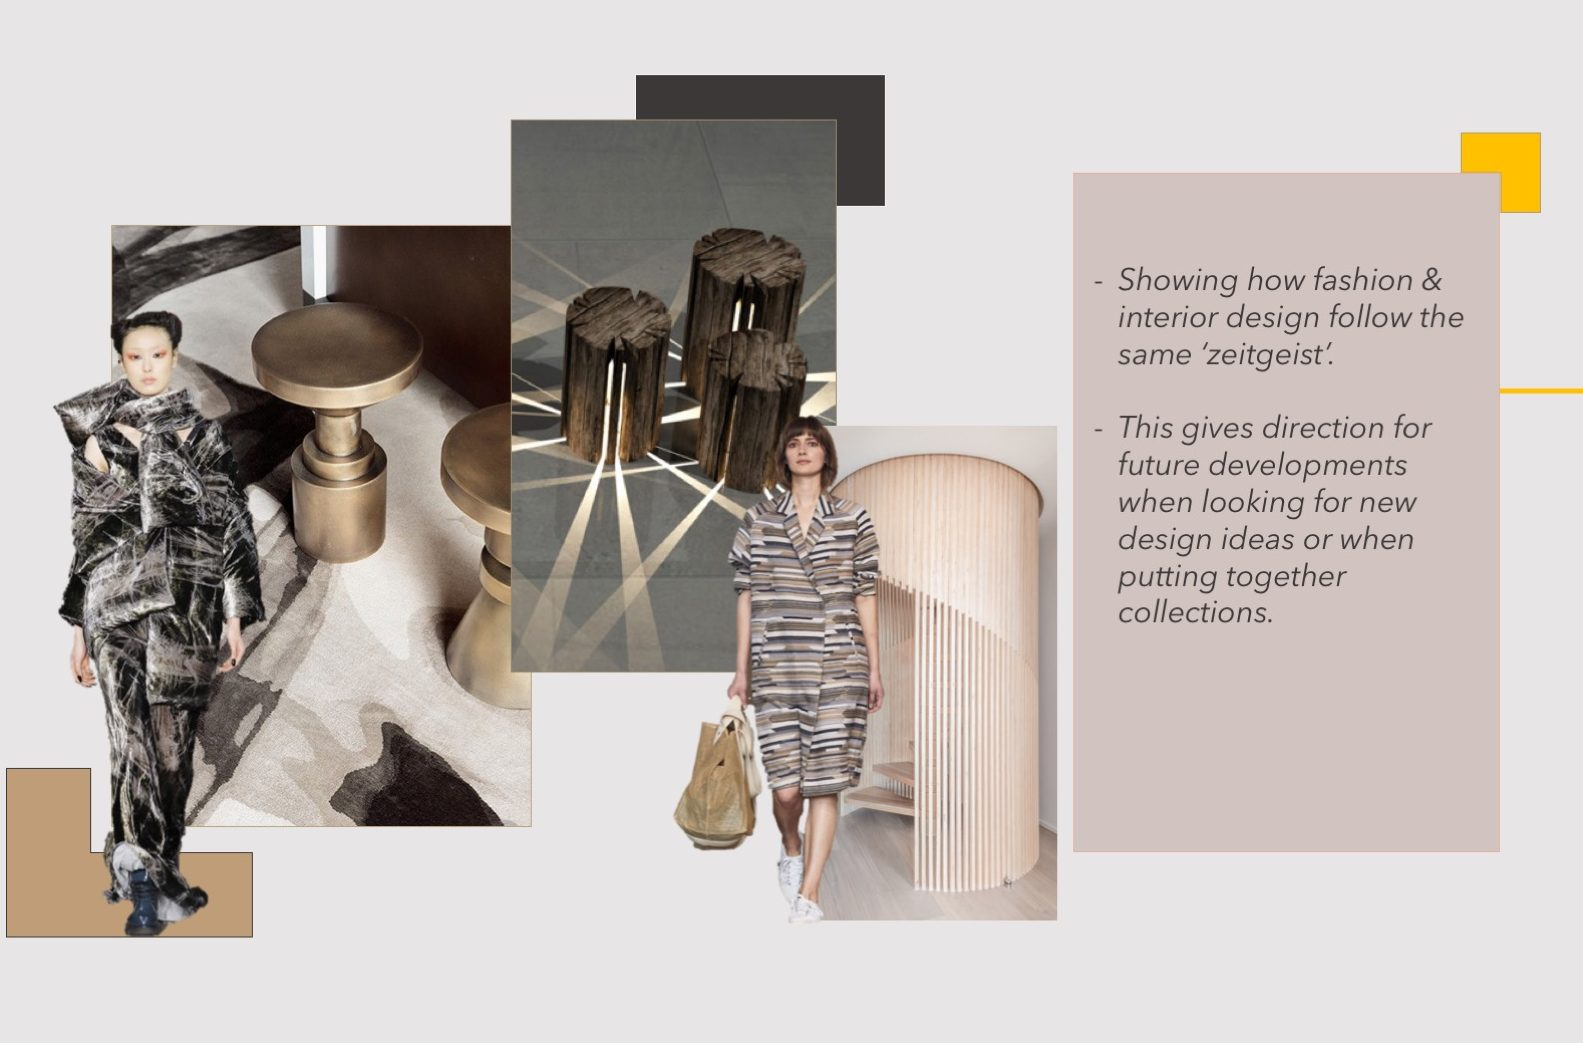 Showing how fashion and interior design follow the same 'zeitgeist'. This gives direction for future developments when looking for new design ideas or when putting together collections.